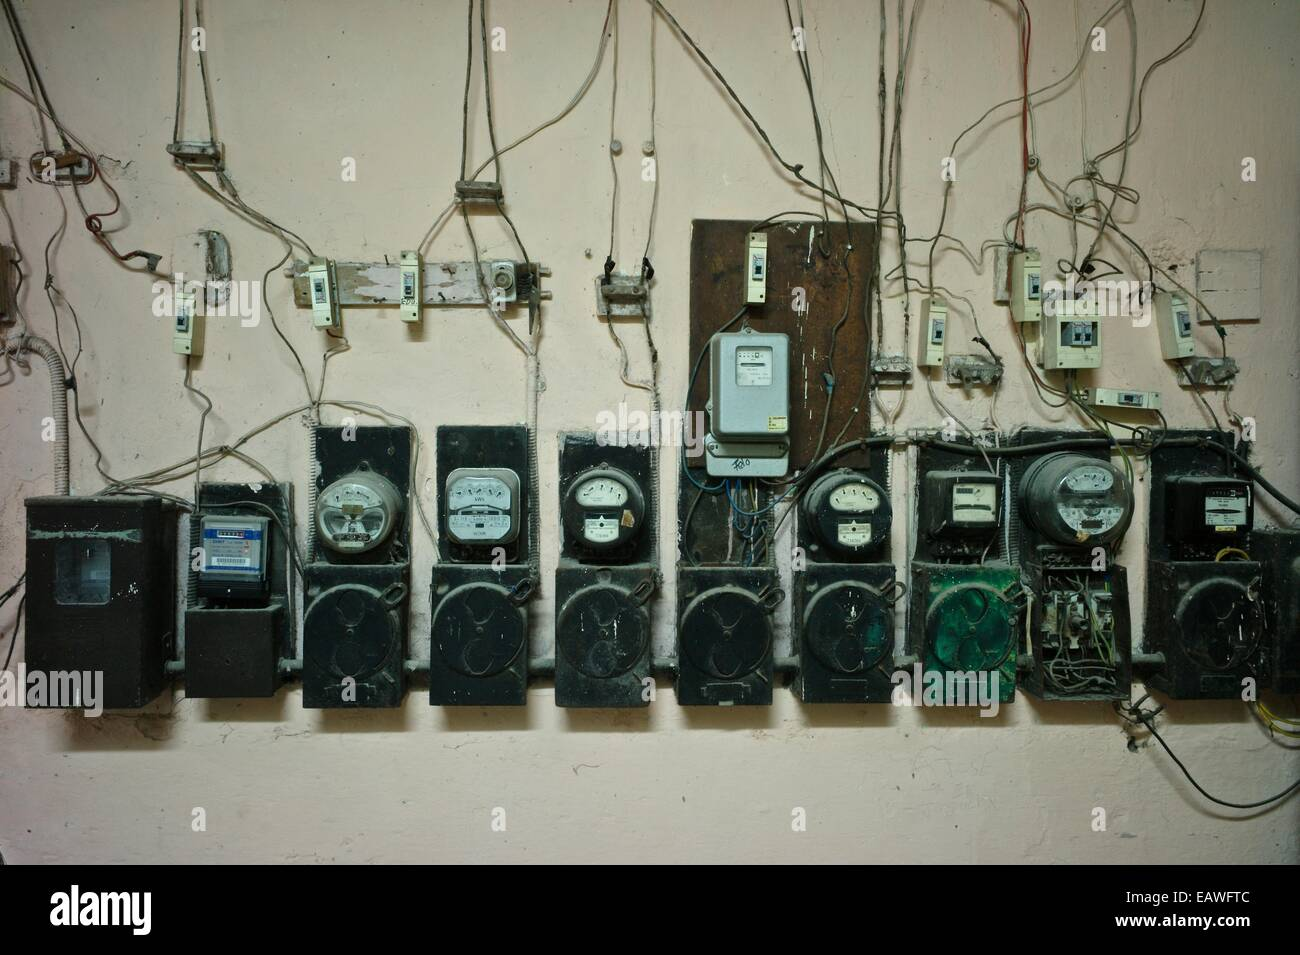 Electricity counters in the lobby of a building in Old Havana. - Stock Image